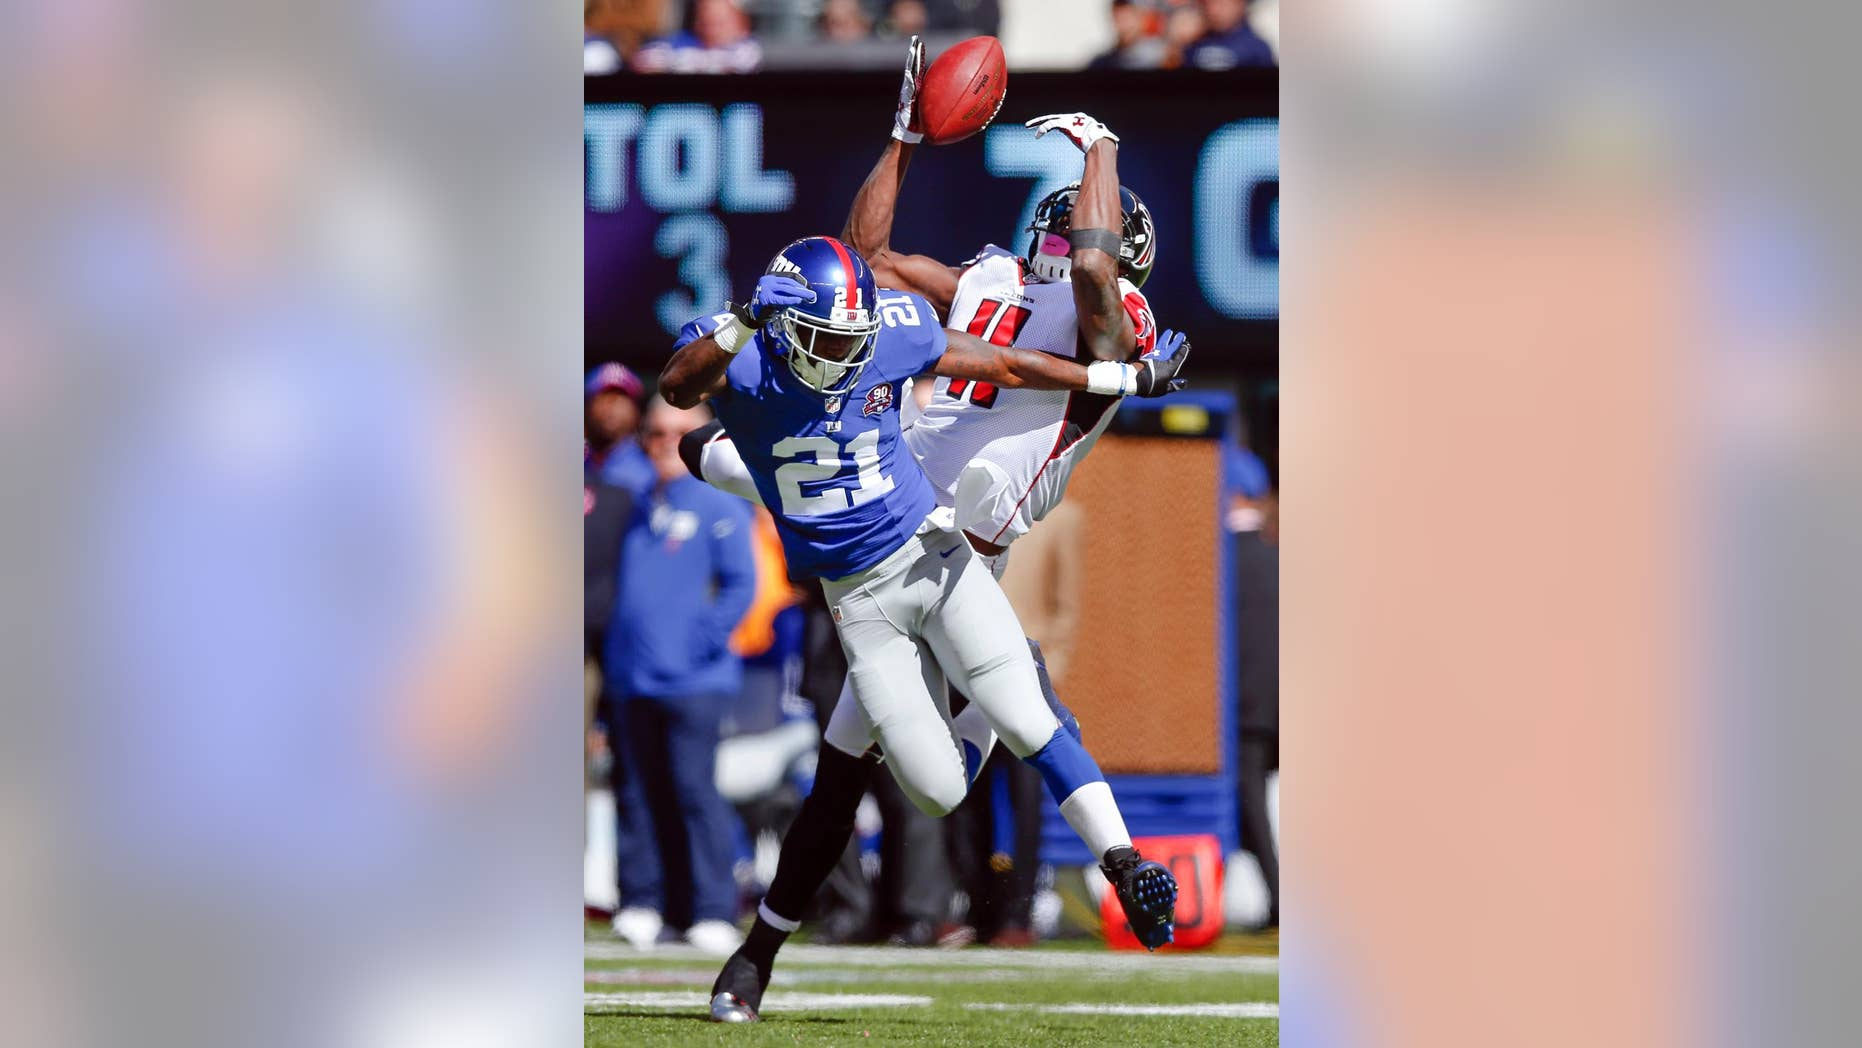 Atlanta Falcons wide receiver Julio Jones (11) is unable to catch a pass as New York Giants cornerback Dominique Rodgers-Cromartie (21) defends during the first half of an NFL football game, Sunday, Oct. 5, 2014, in East Rutherford, N.J. (AP Photo/Kathy Willens)